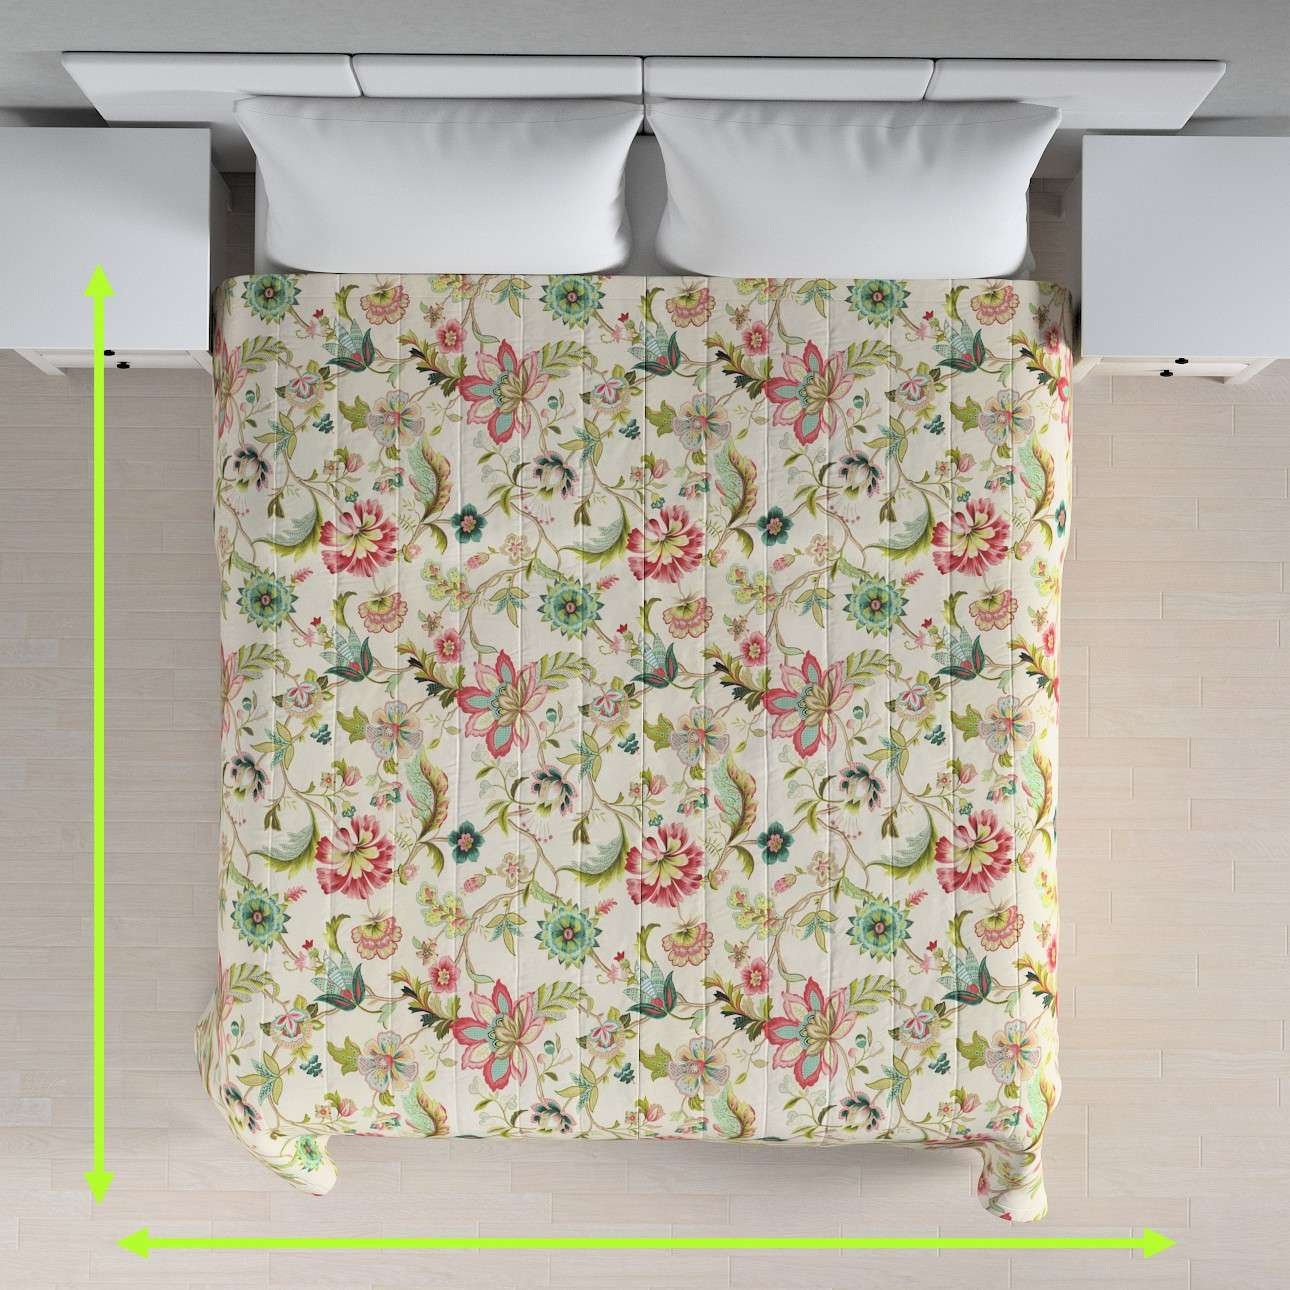 Quilted throw (vertical quilt pattern) in collection Londres, fabric: 122-00